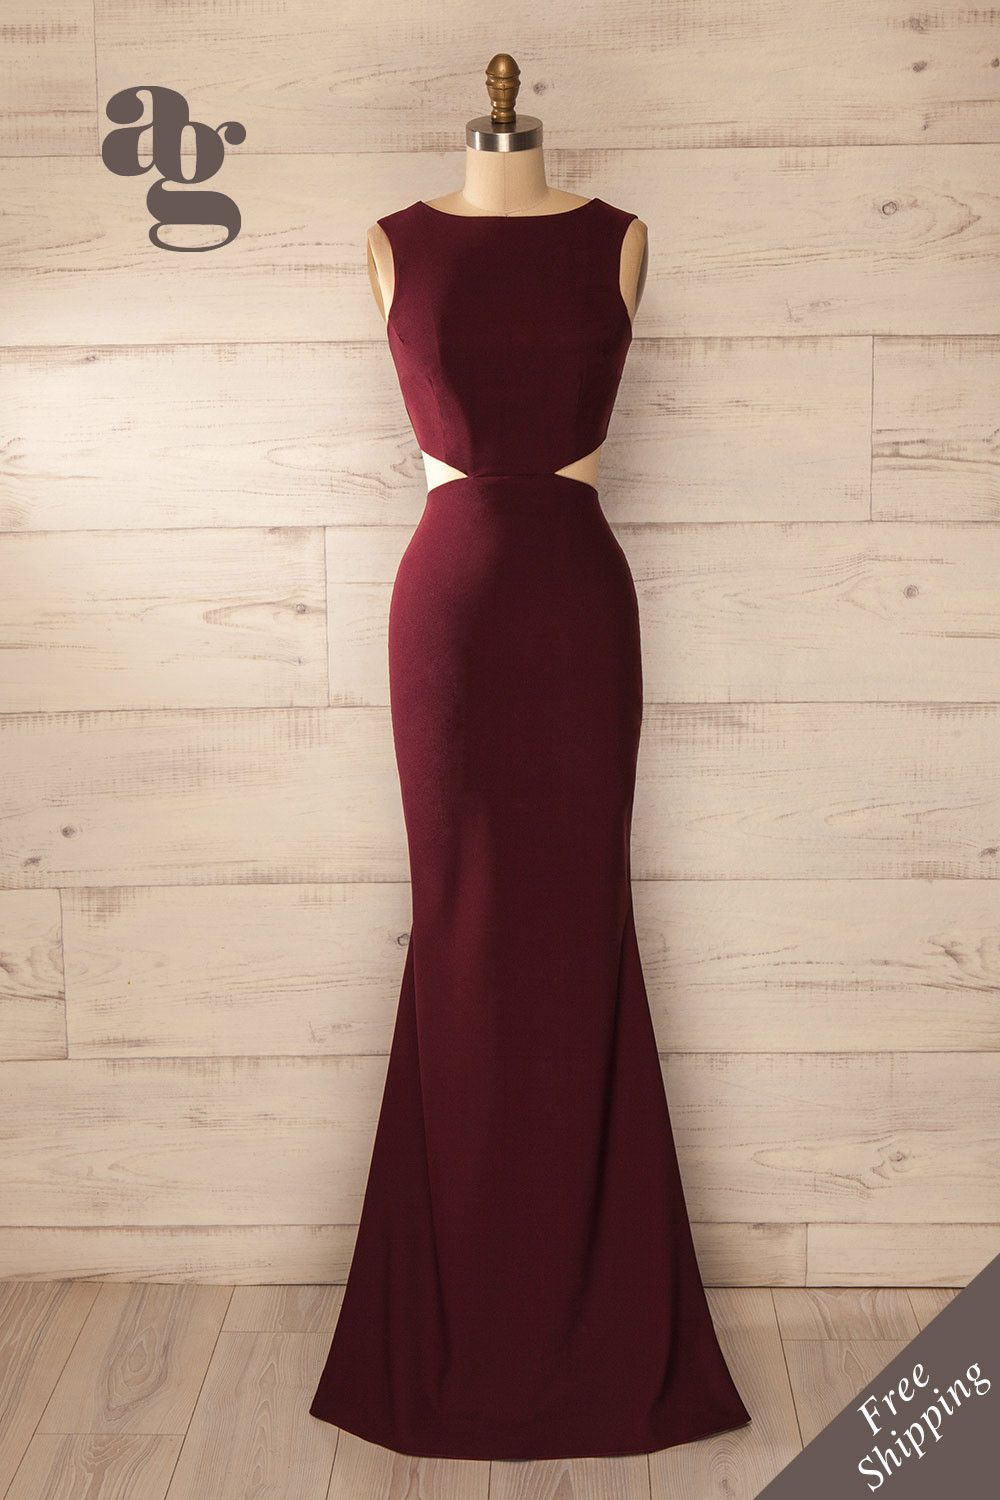 Vallata wine τ formal dresses τ pinterest gowns wine and prom